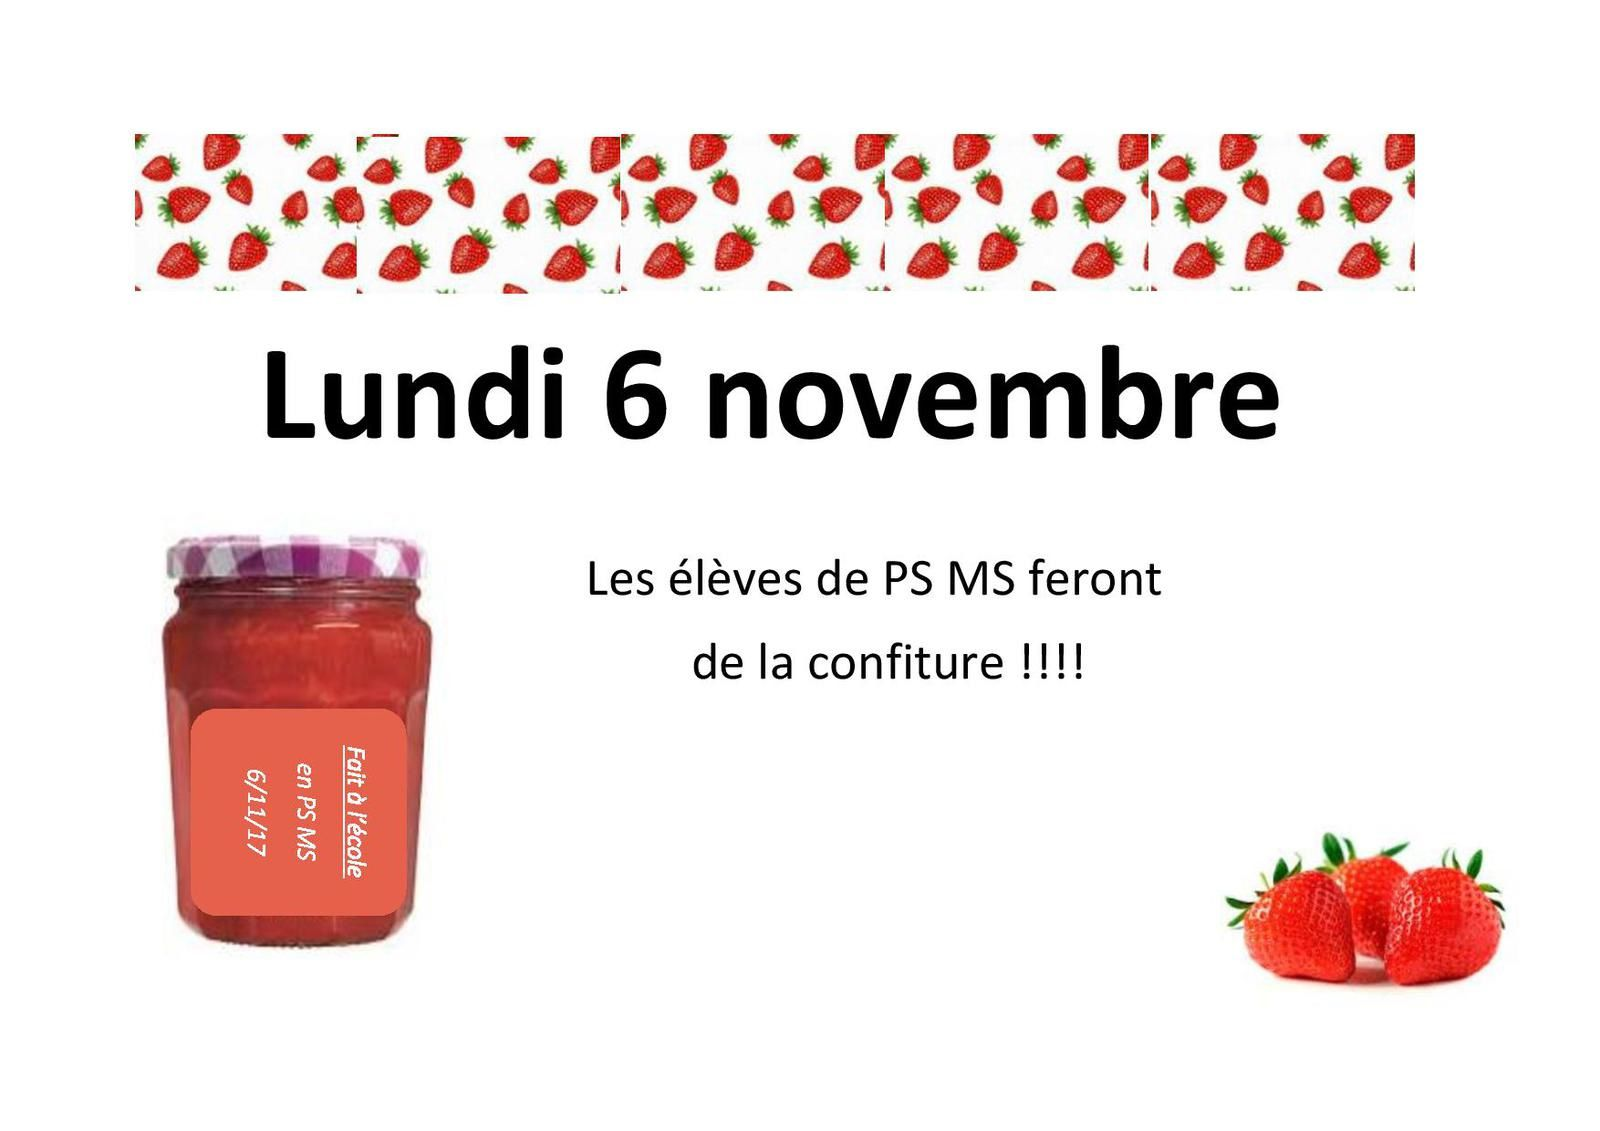 Atelier confiture en PS MS